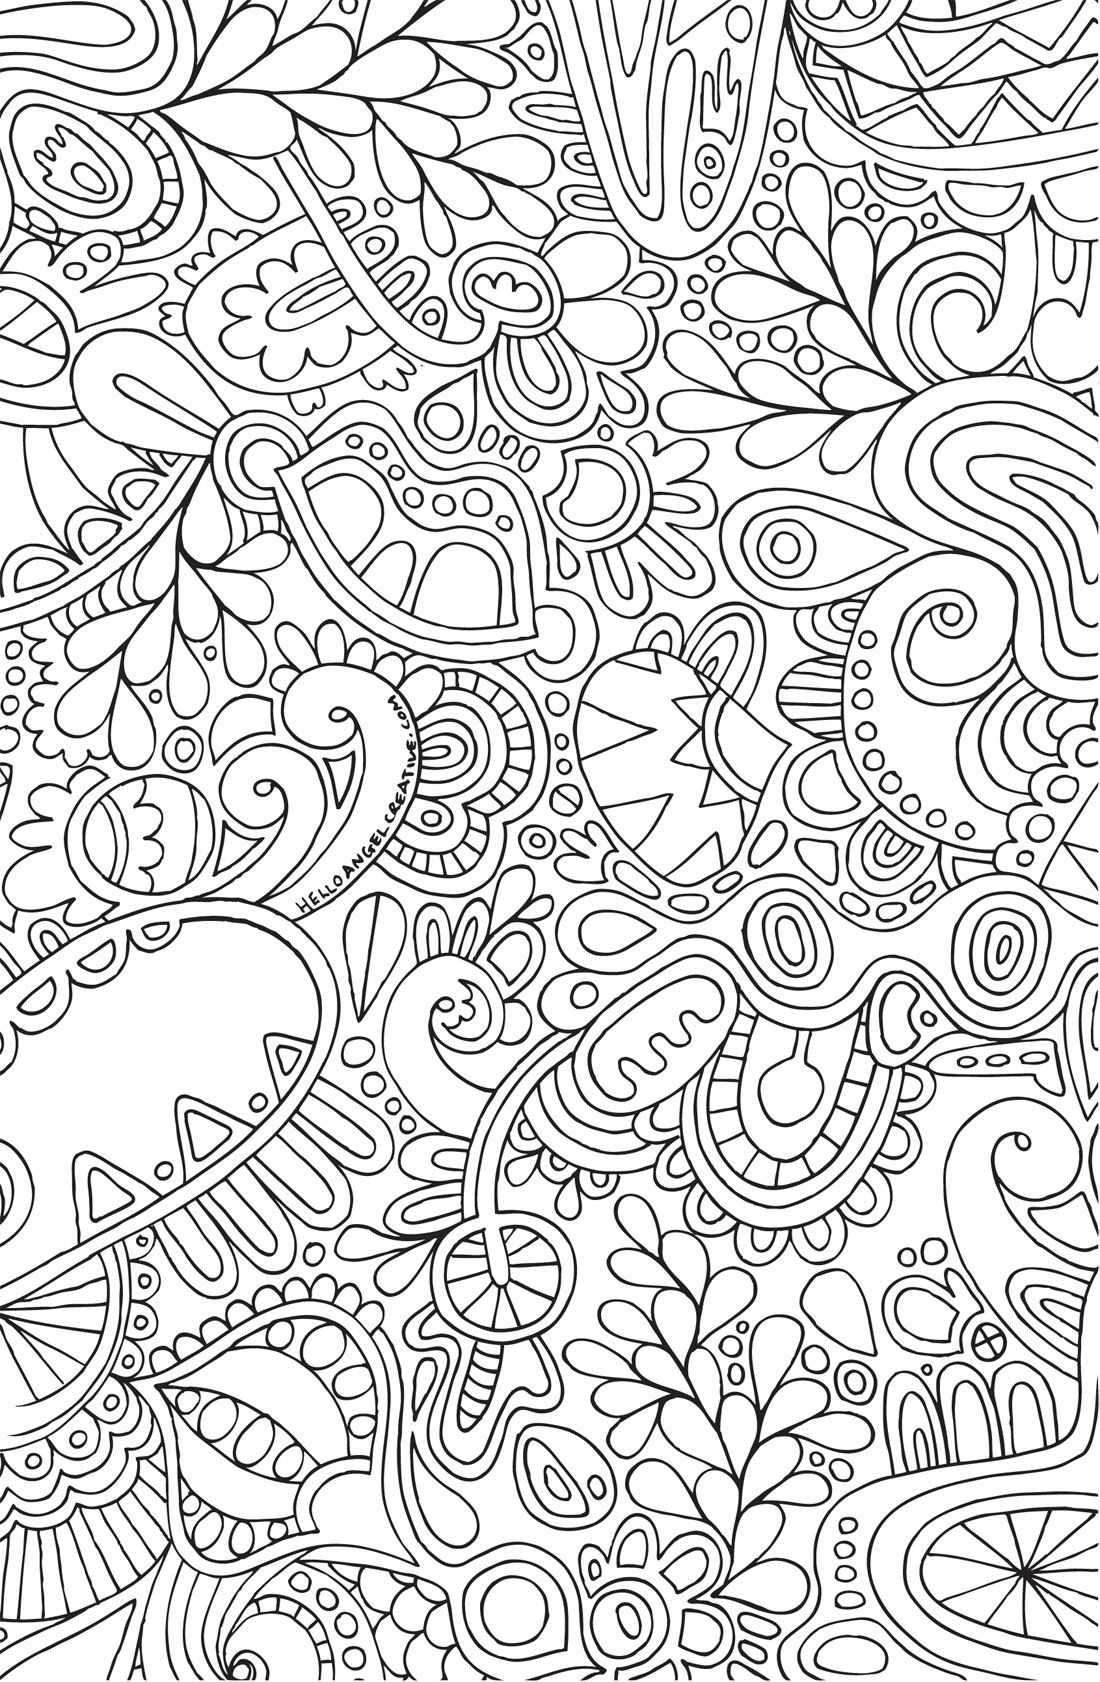 Abstract Doodle Zentangle Coloring pages colouring adult detailed ...